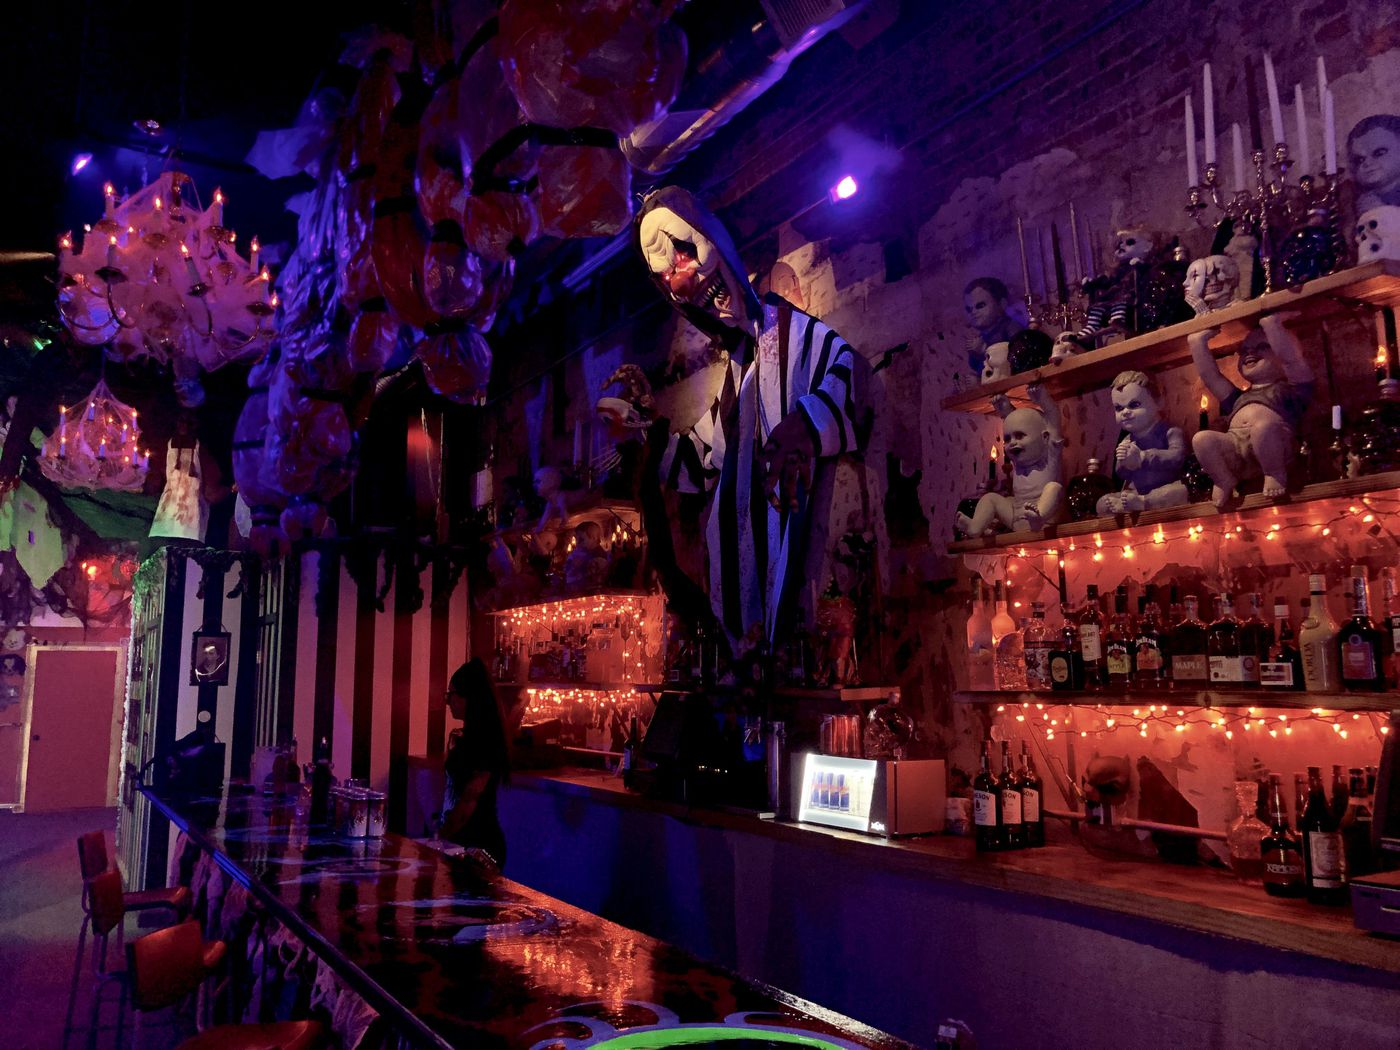 Philadelphia Halloween Decorations 2020 4 Halloween bars you can't miss in Philly | Let's Eat